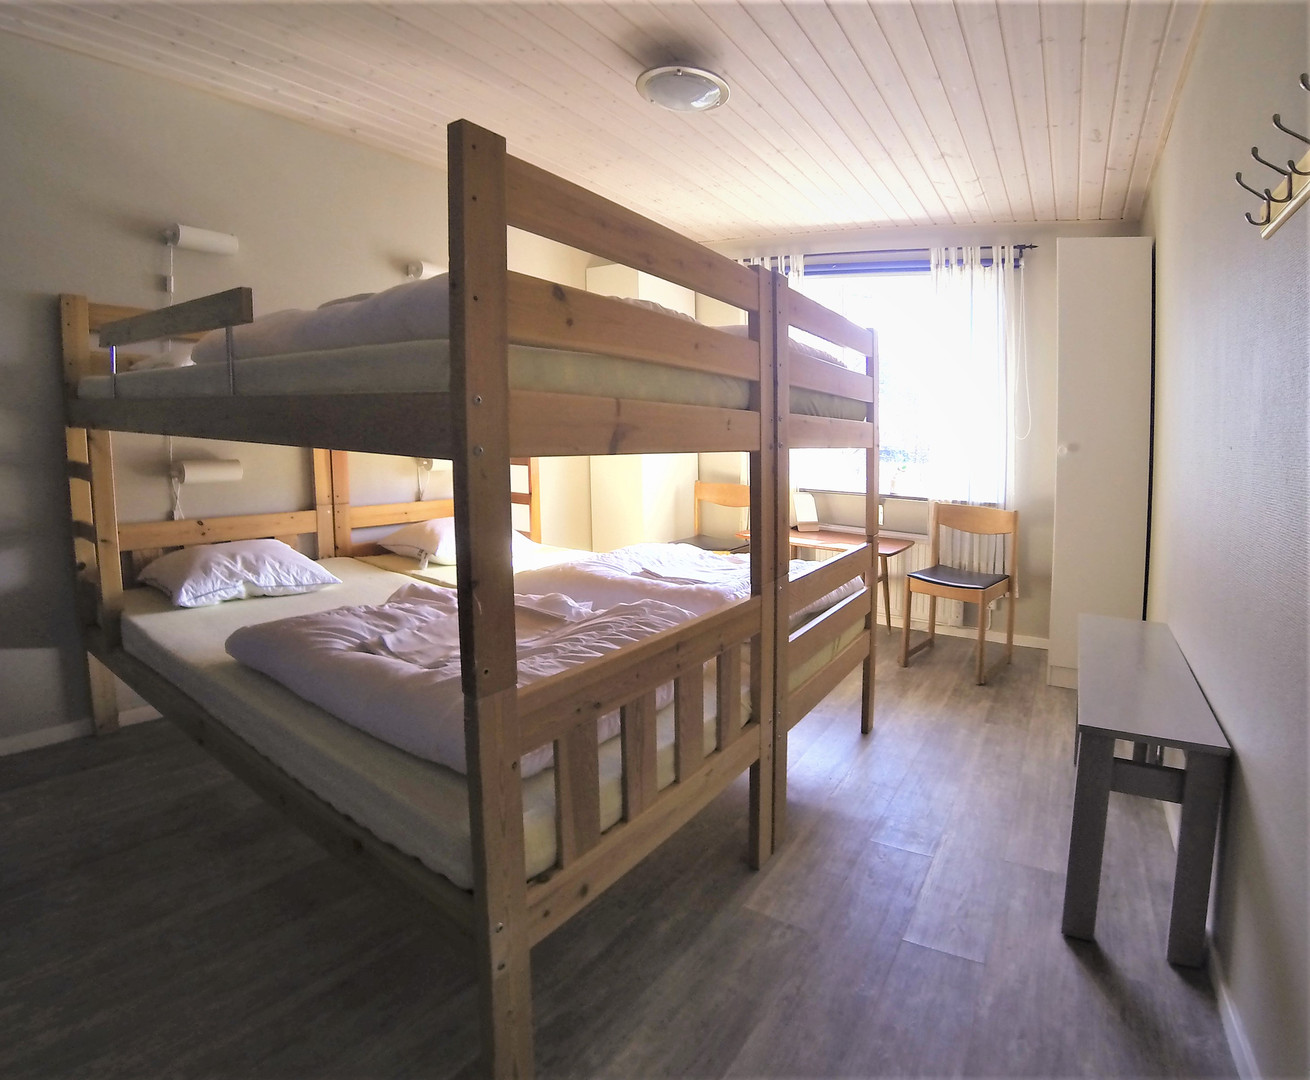 The four-bed rooms in Lejonkulan